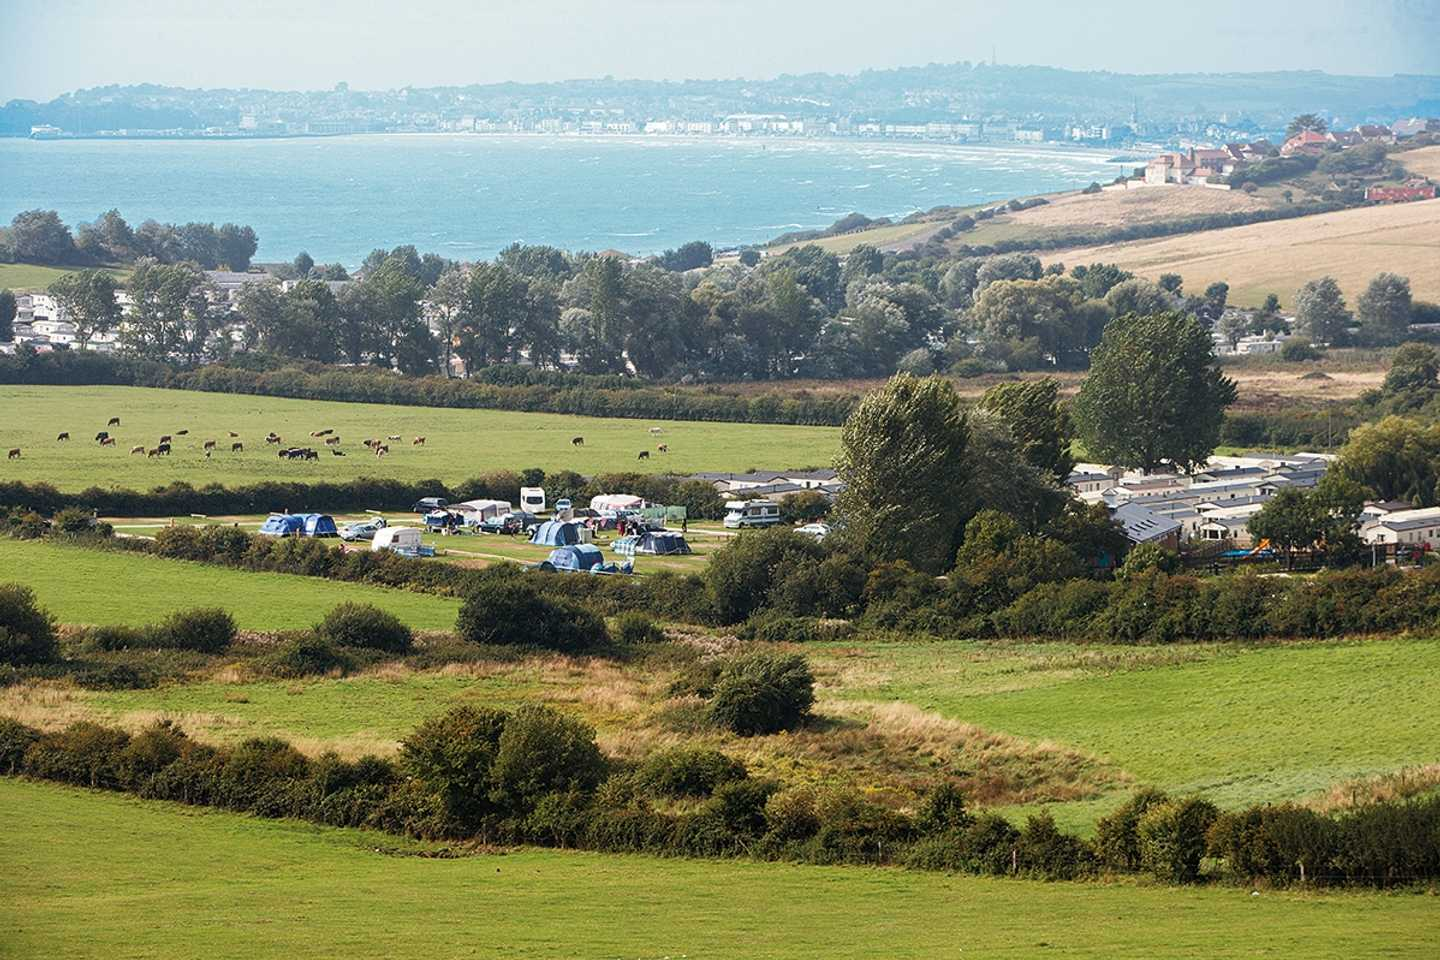 Views from the touring area at Seaview